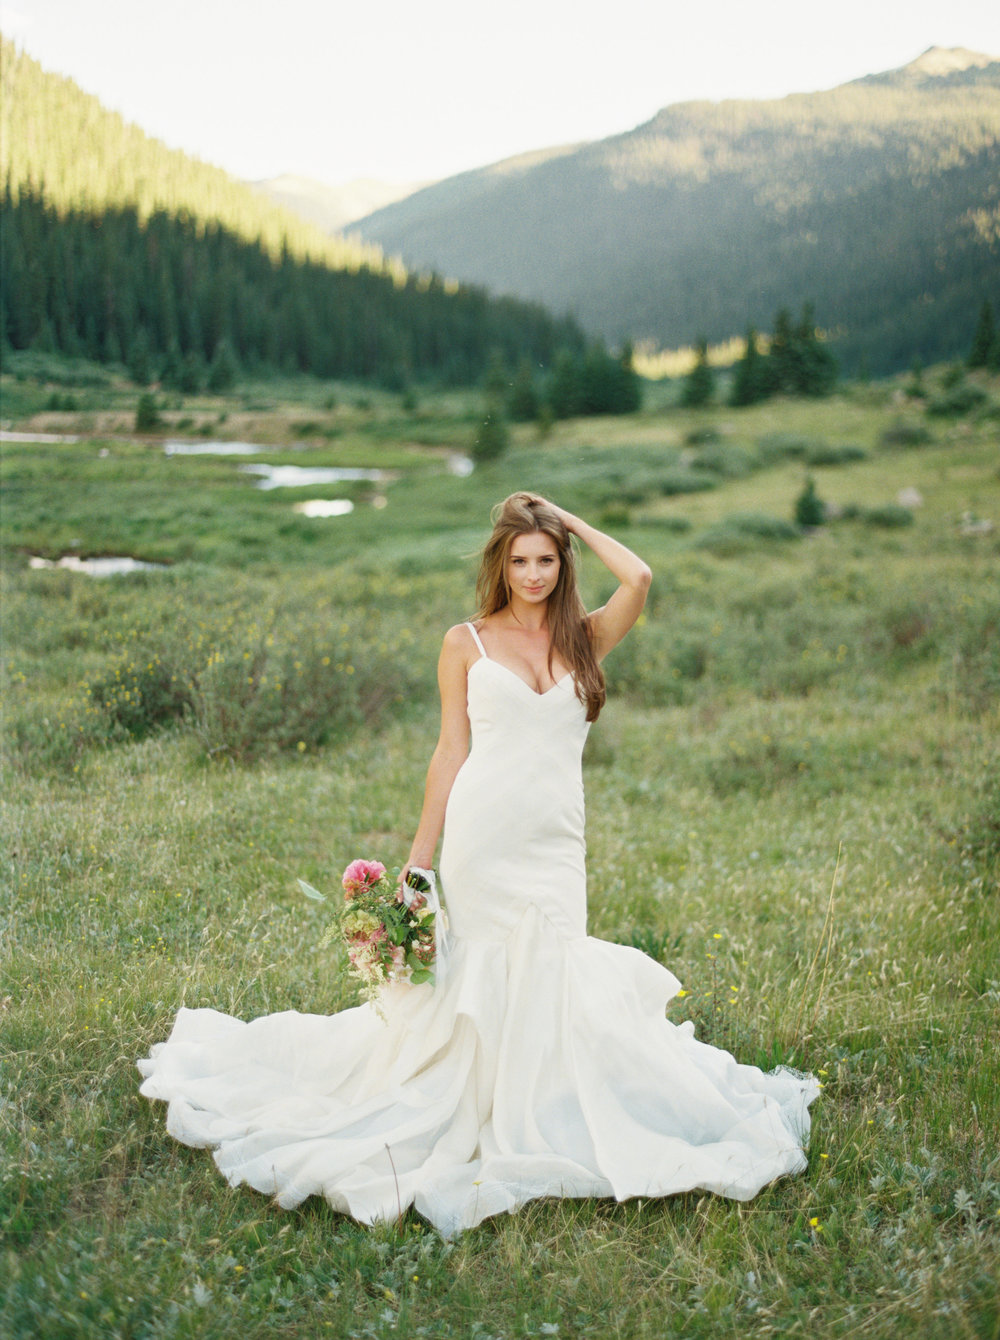 kristinsweeting_coloradostyledshoot-0056.jpg